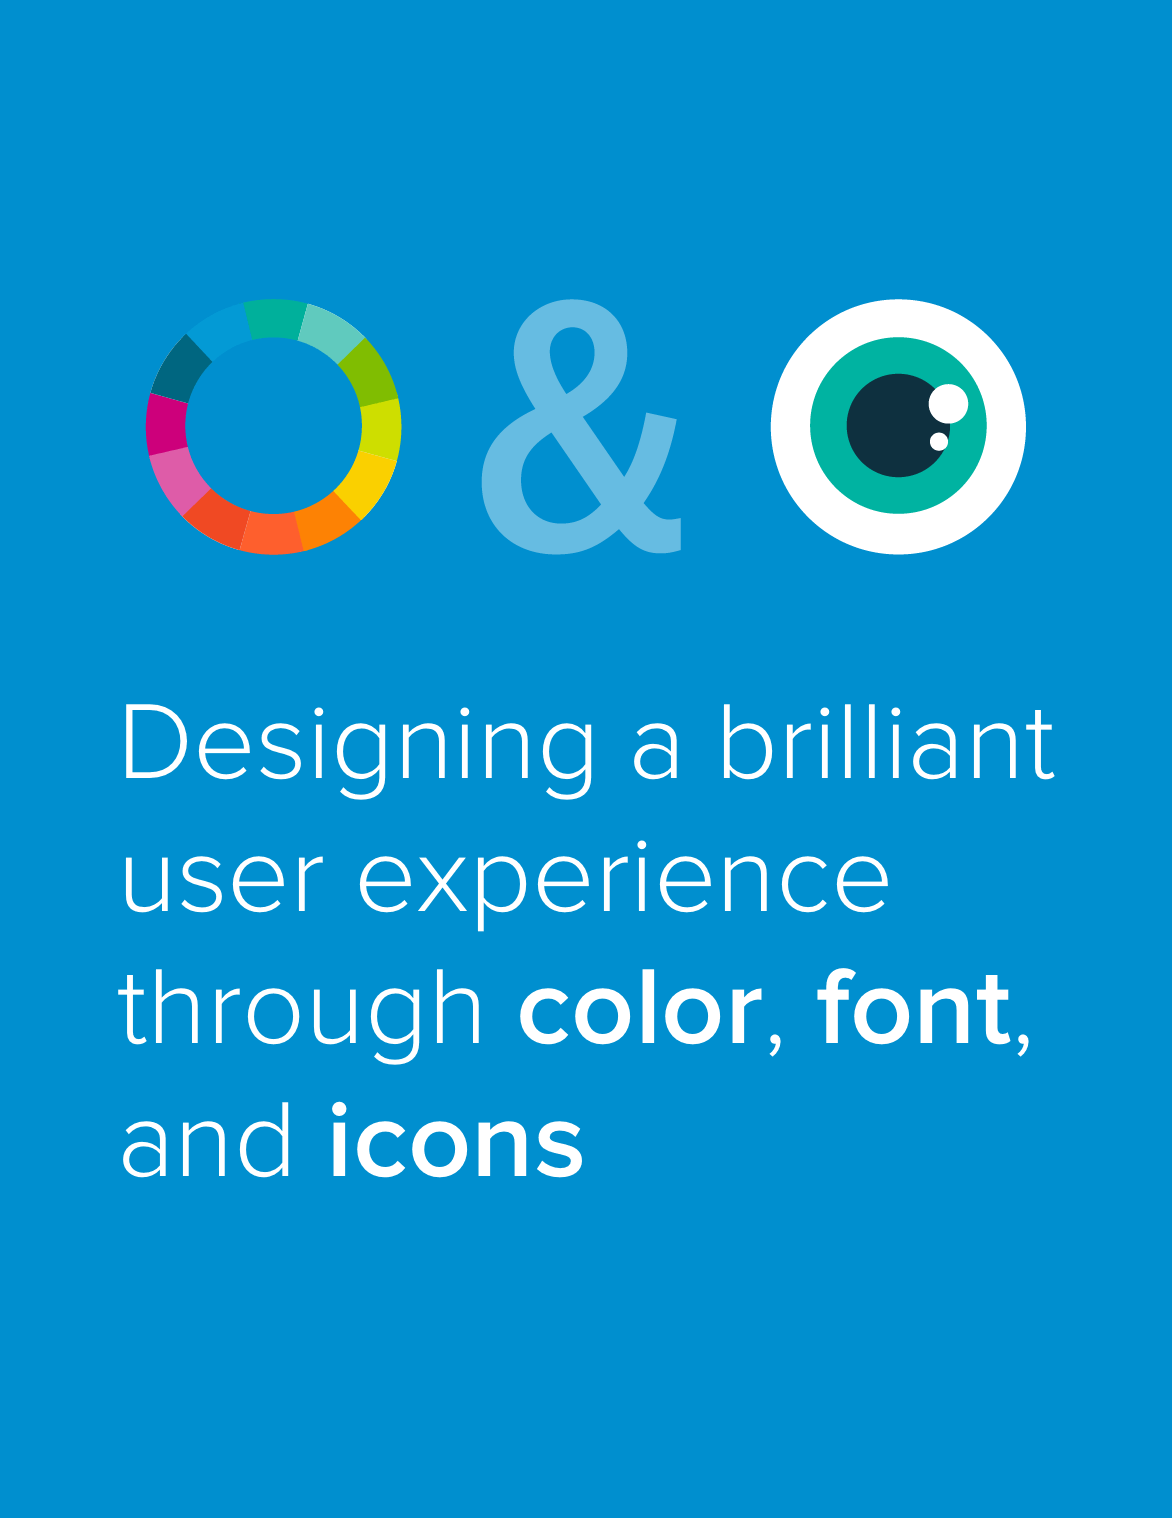 Free ebook: Designing a brilliant user experience through color, font, and icons